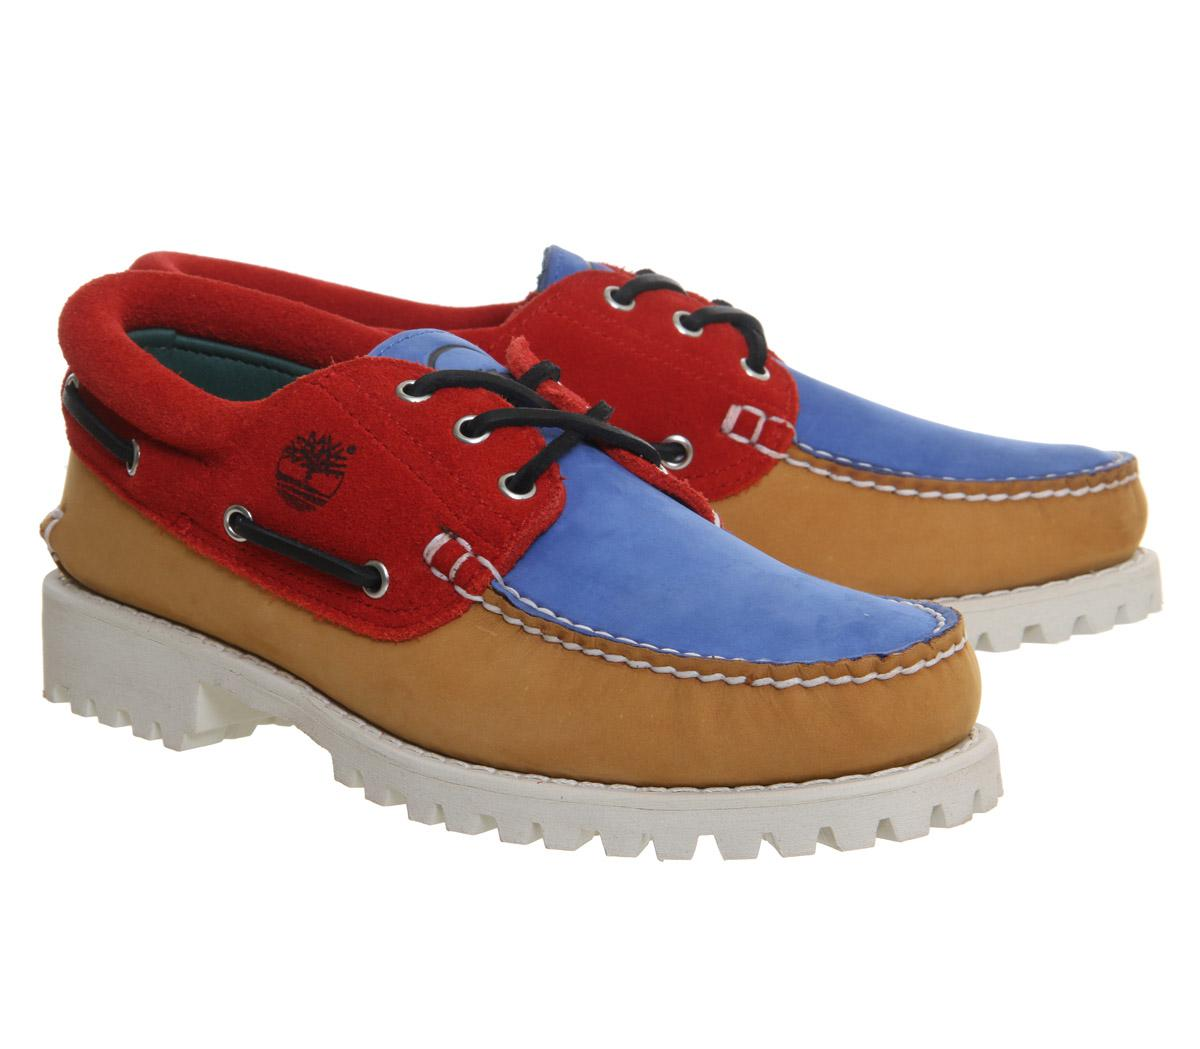 Timberland Multicolor Lug Boat Shoes for men